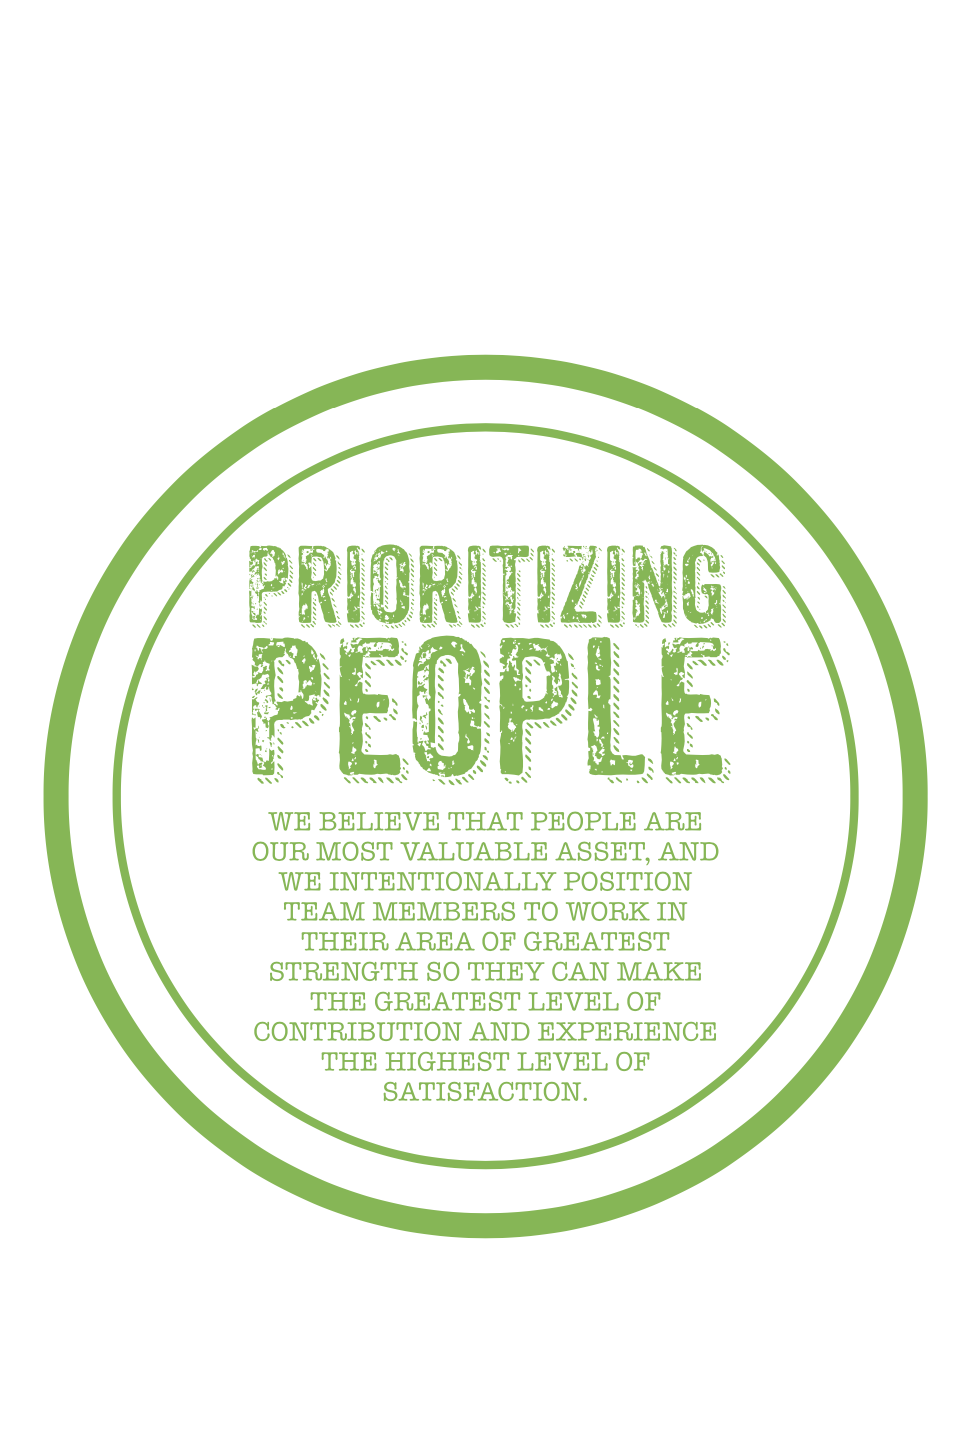 Harvest Wealth Group Core Values- Prioritizing People